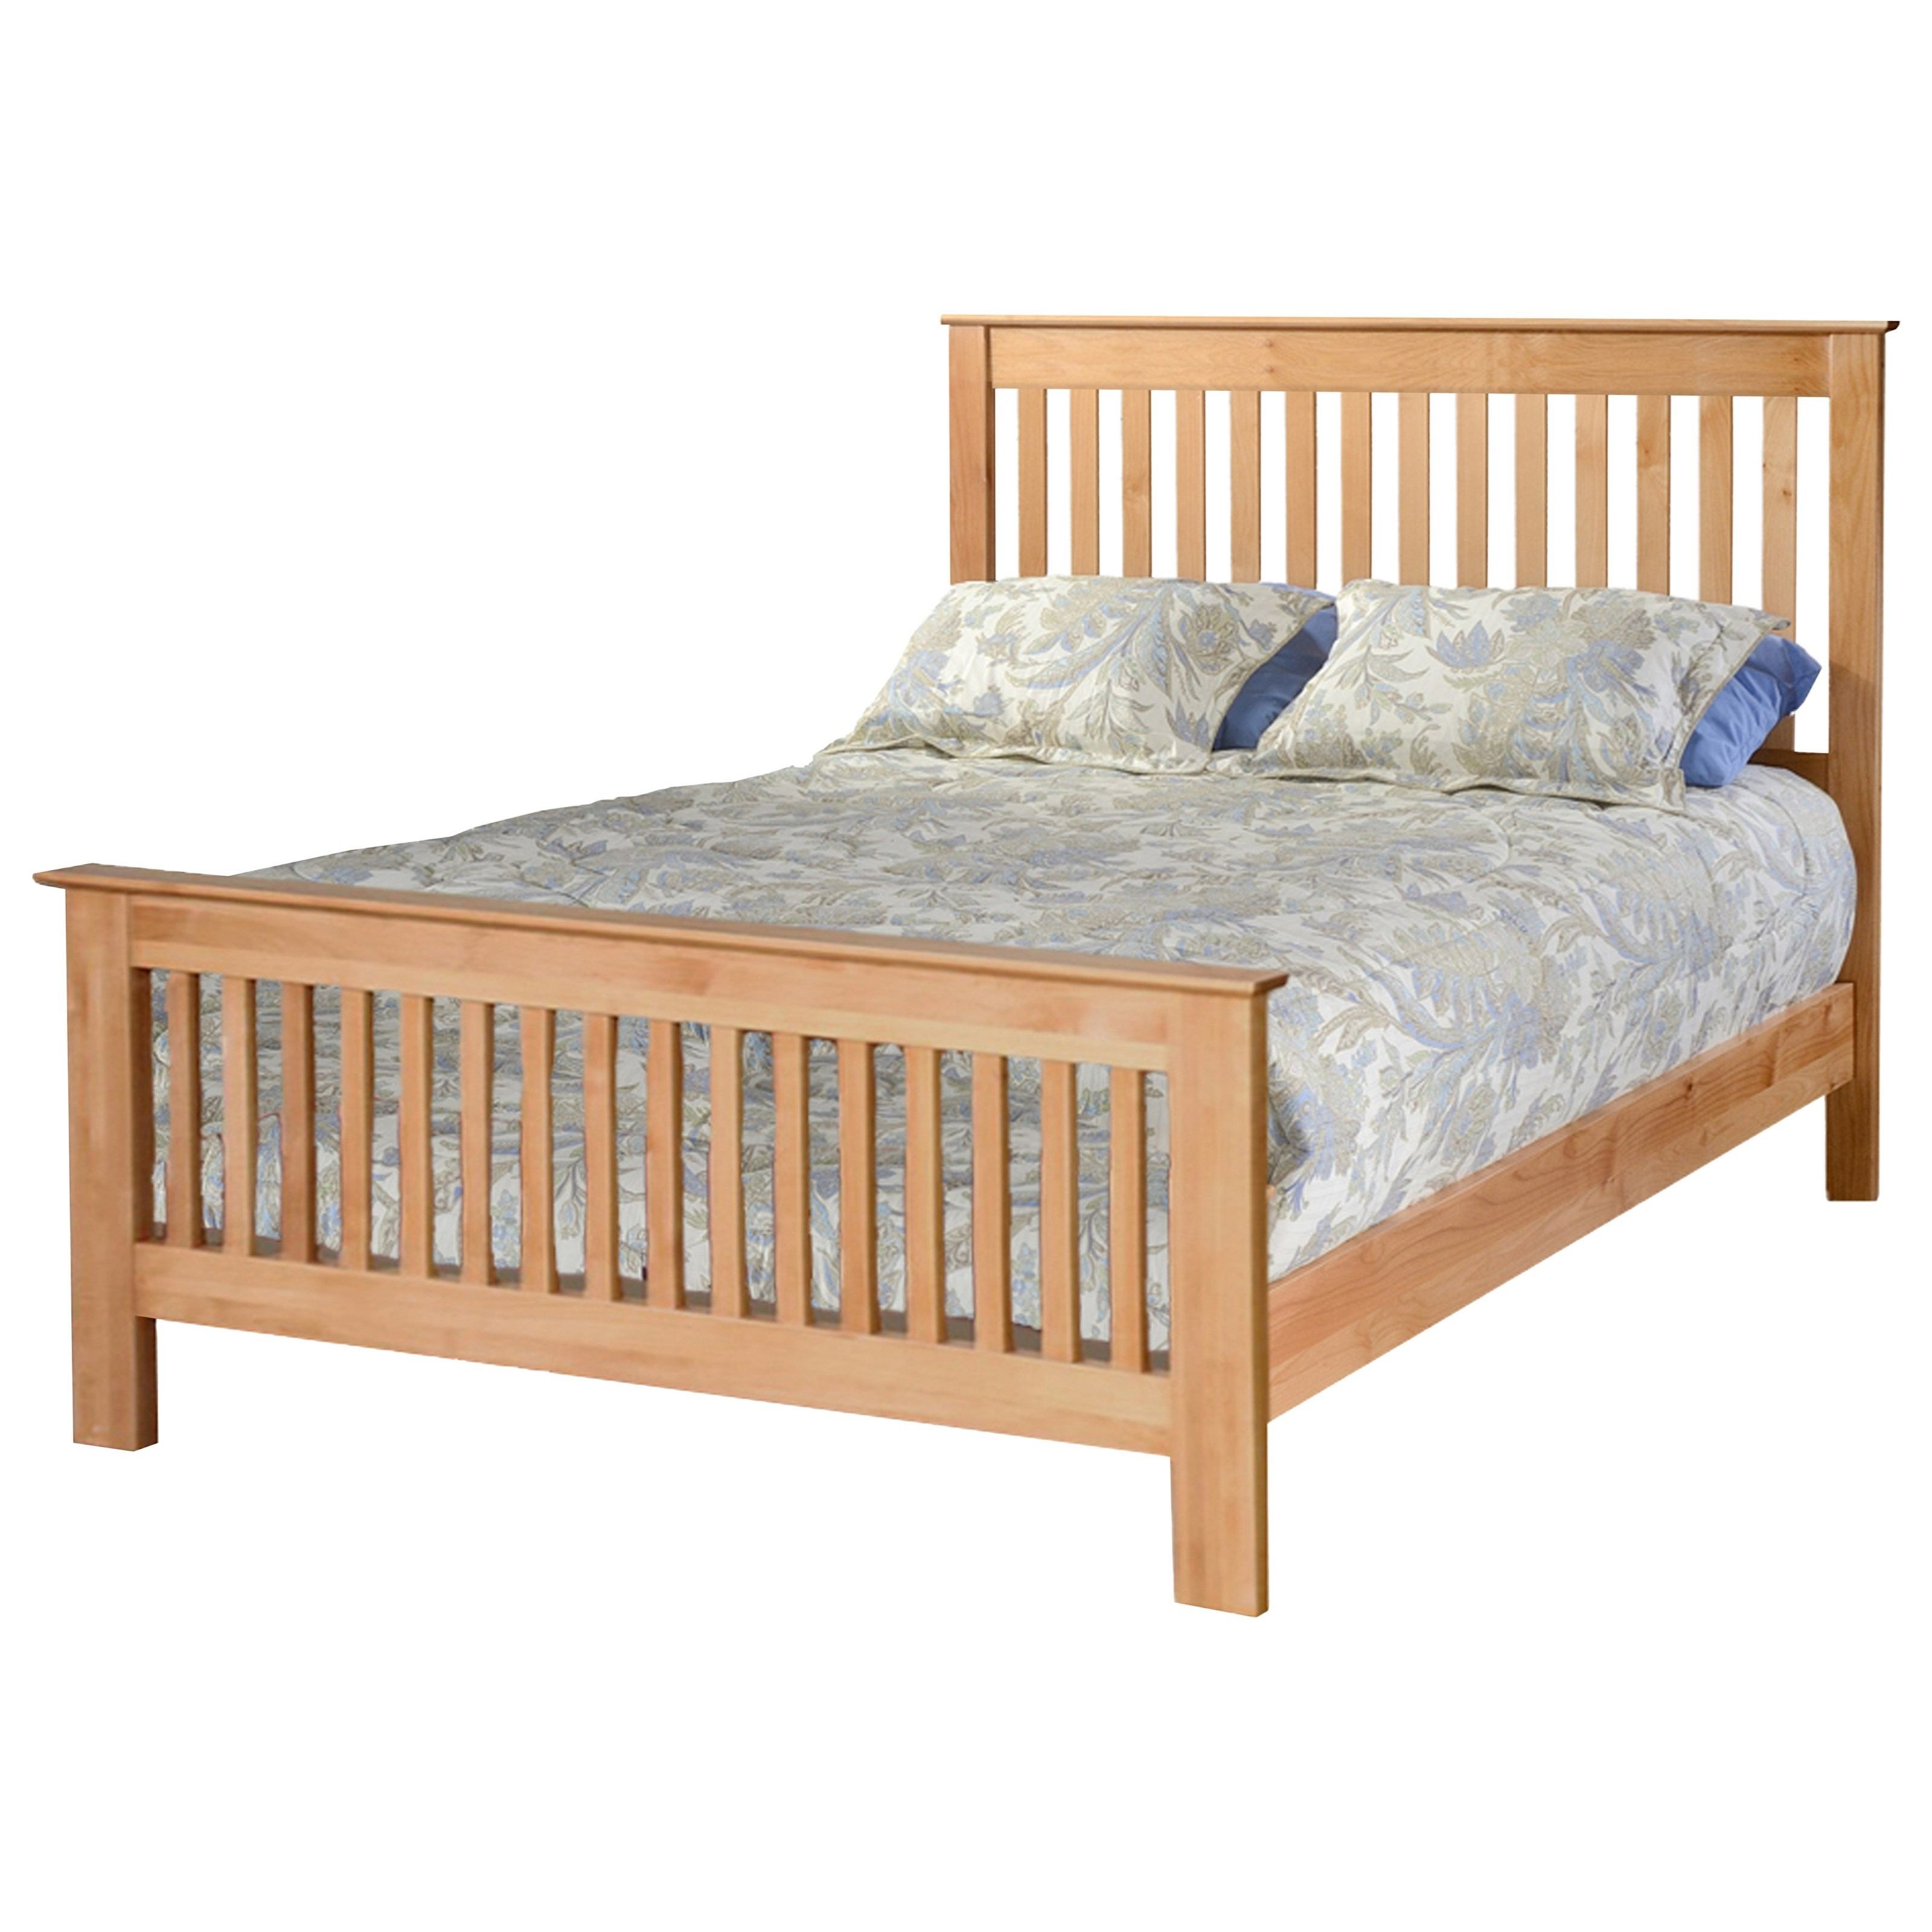 Shaker King Slat Bed by Archbold Furniture at Furniture and ApplianceMart